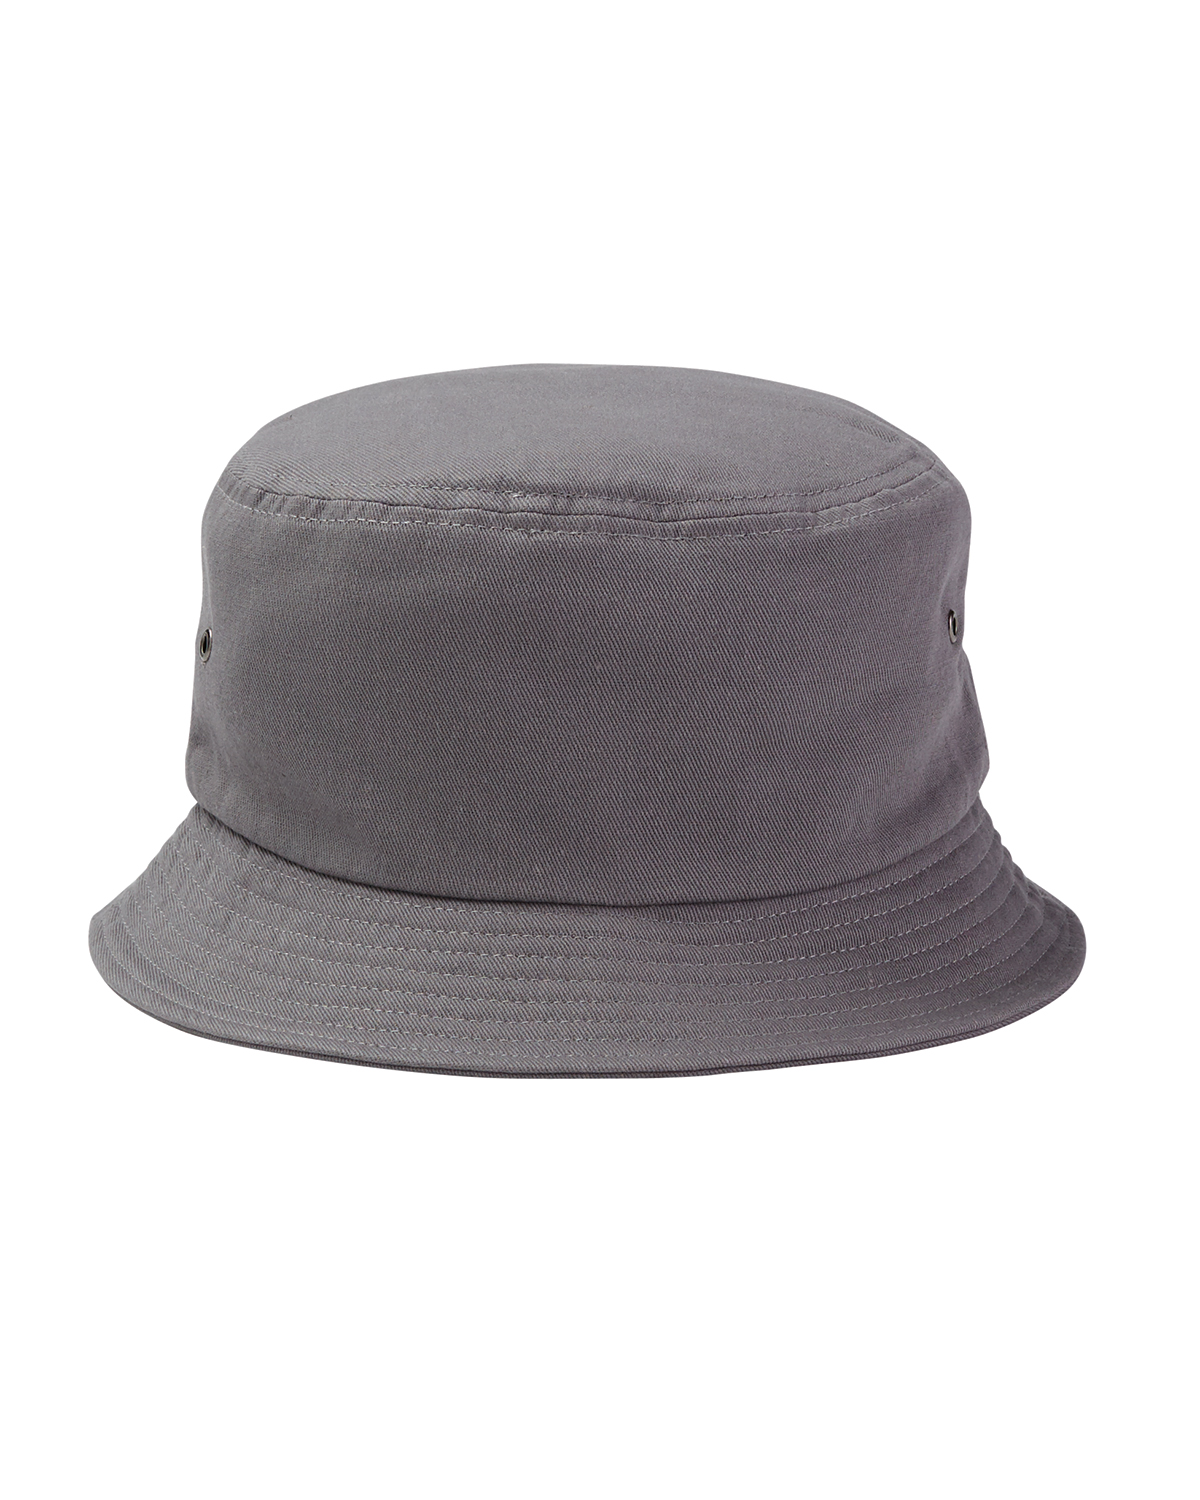 Big Accessories BA534 - Metal Eyelet Bucket Cap